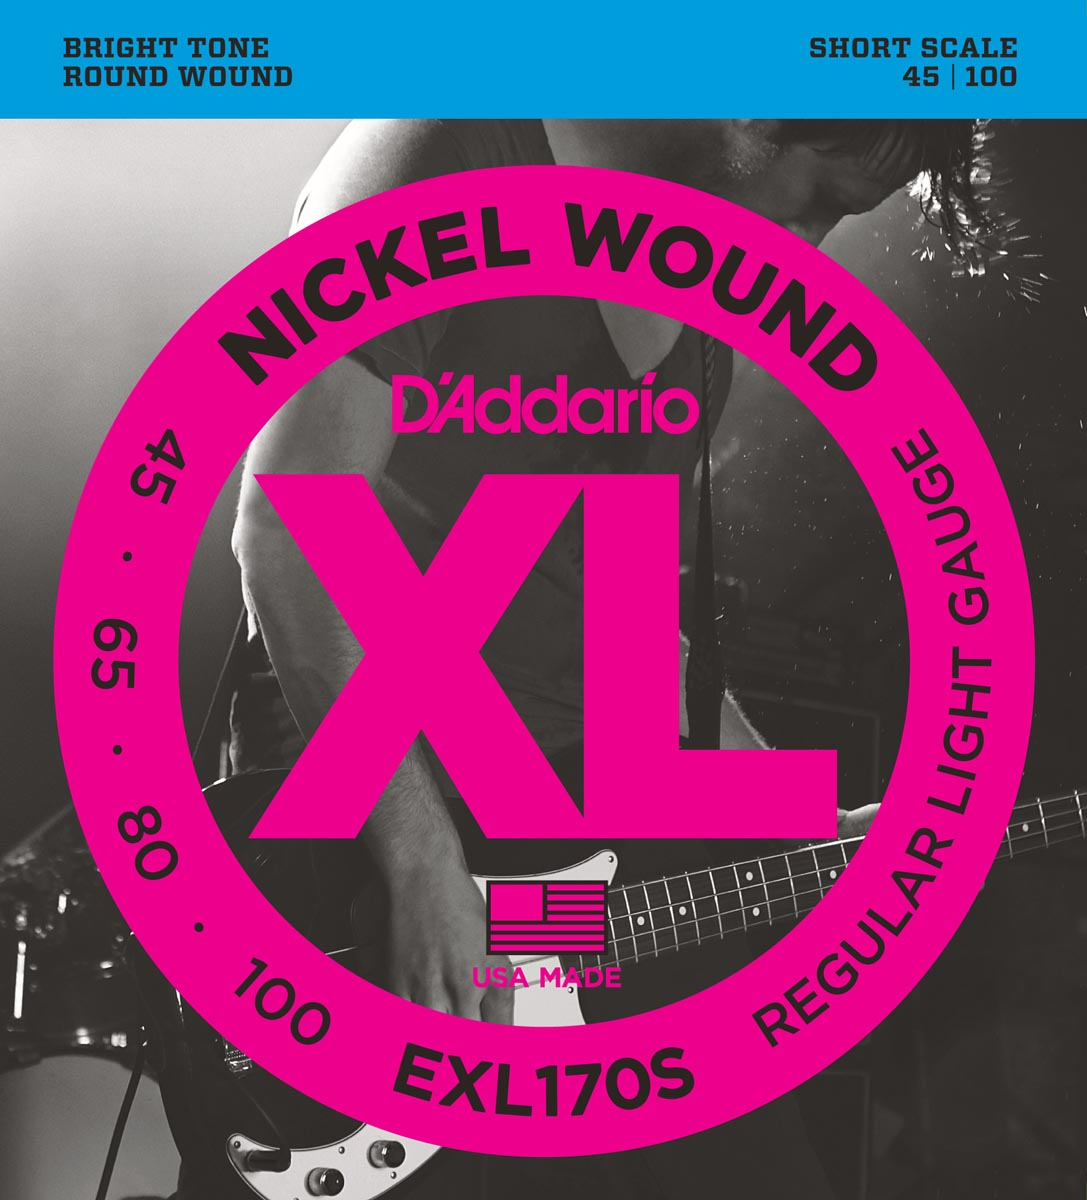 DADDARIO EXL170S - XL NICKEL WOUND ESCALA CORTA